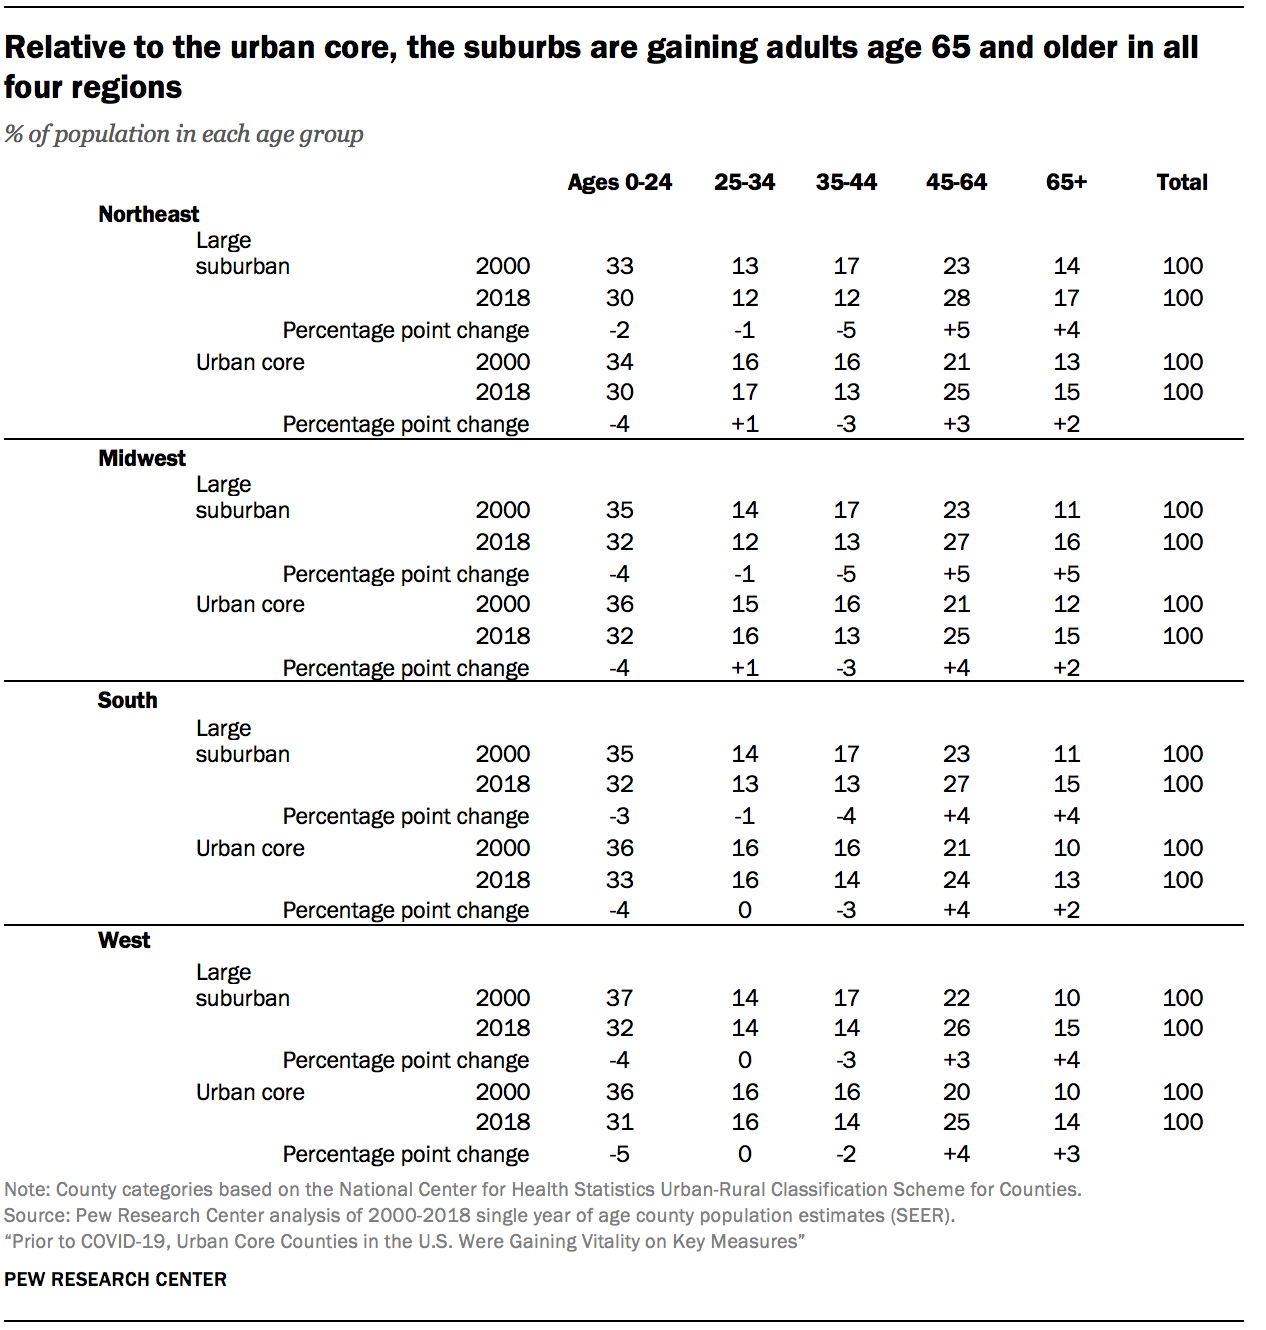 Relative to the urban core, the suburbs are gaining adults age 65 and older in all four regions